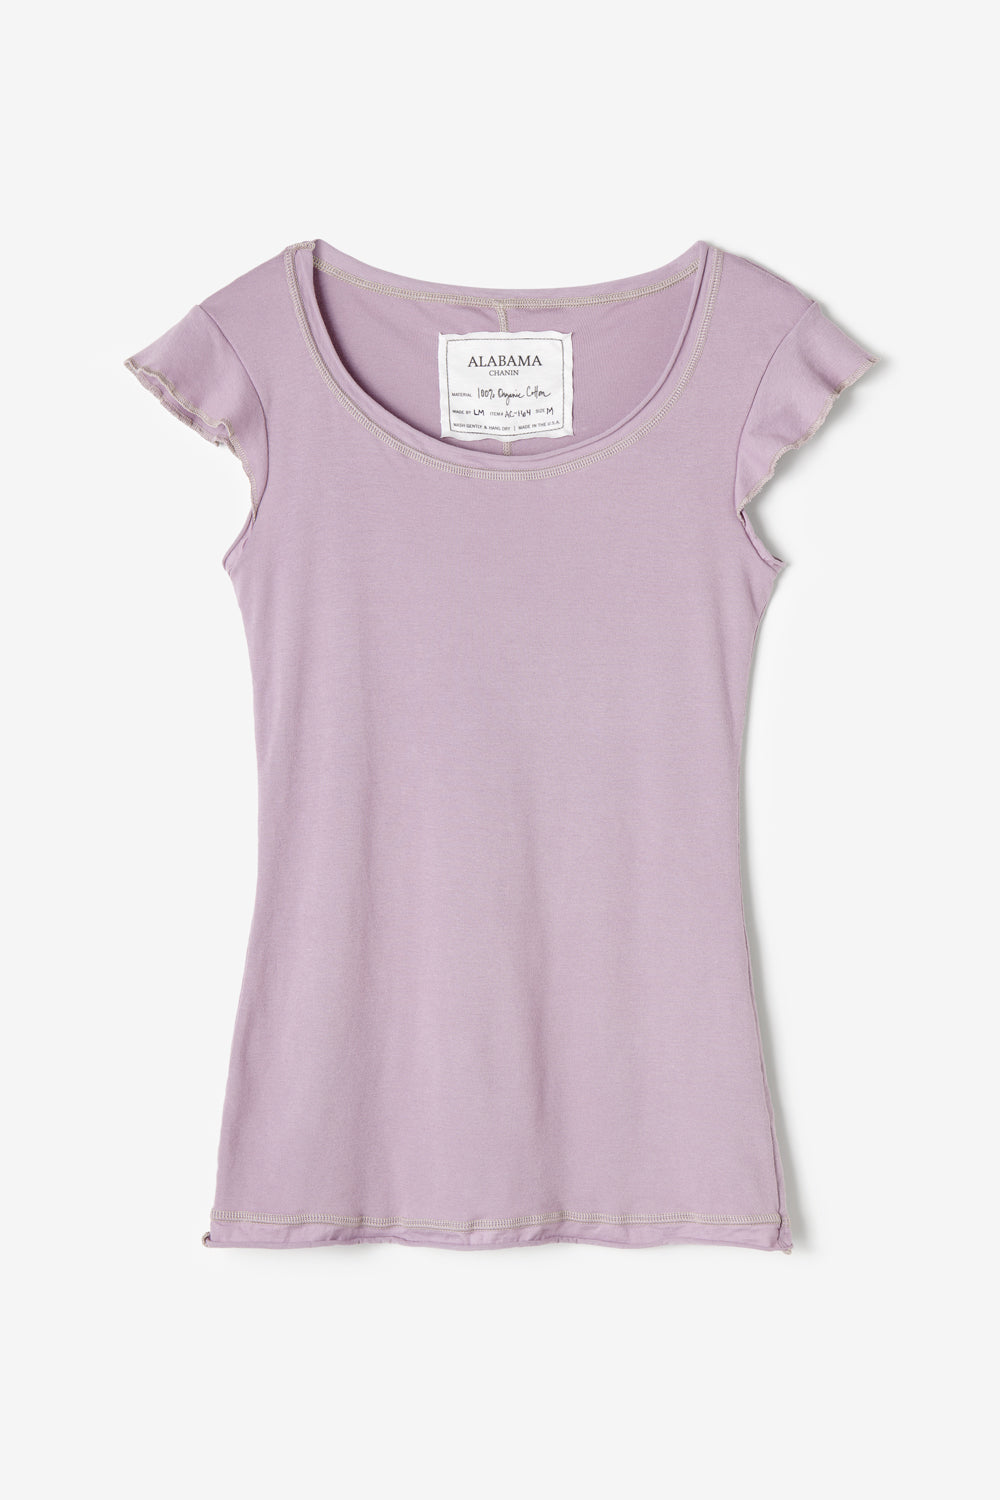 Alabama Chanin Felicity Top with Flutter Sleeves in Lilac Organic Cotton Rib